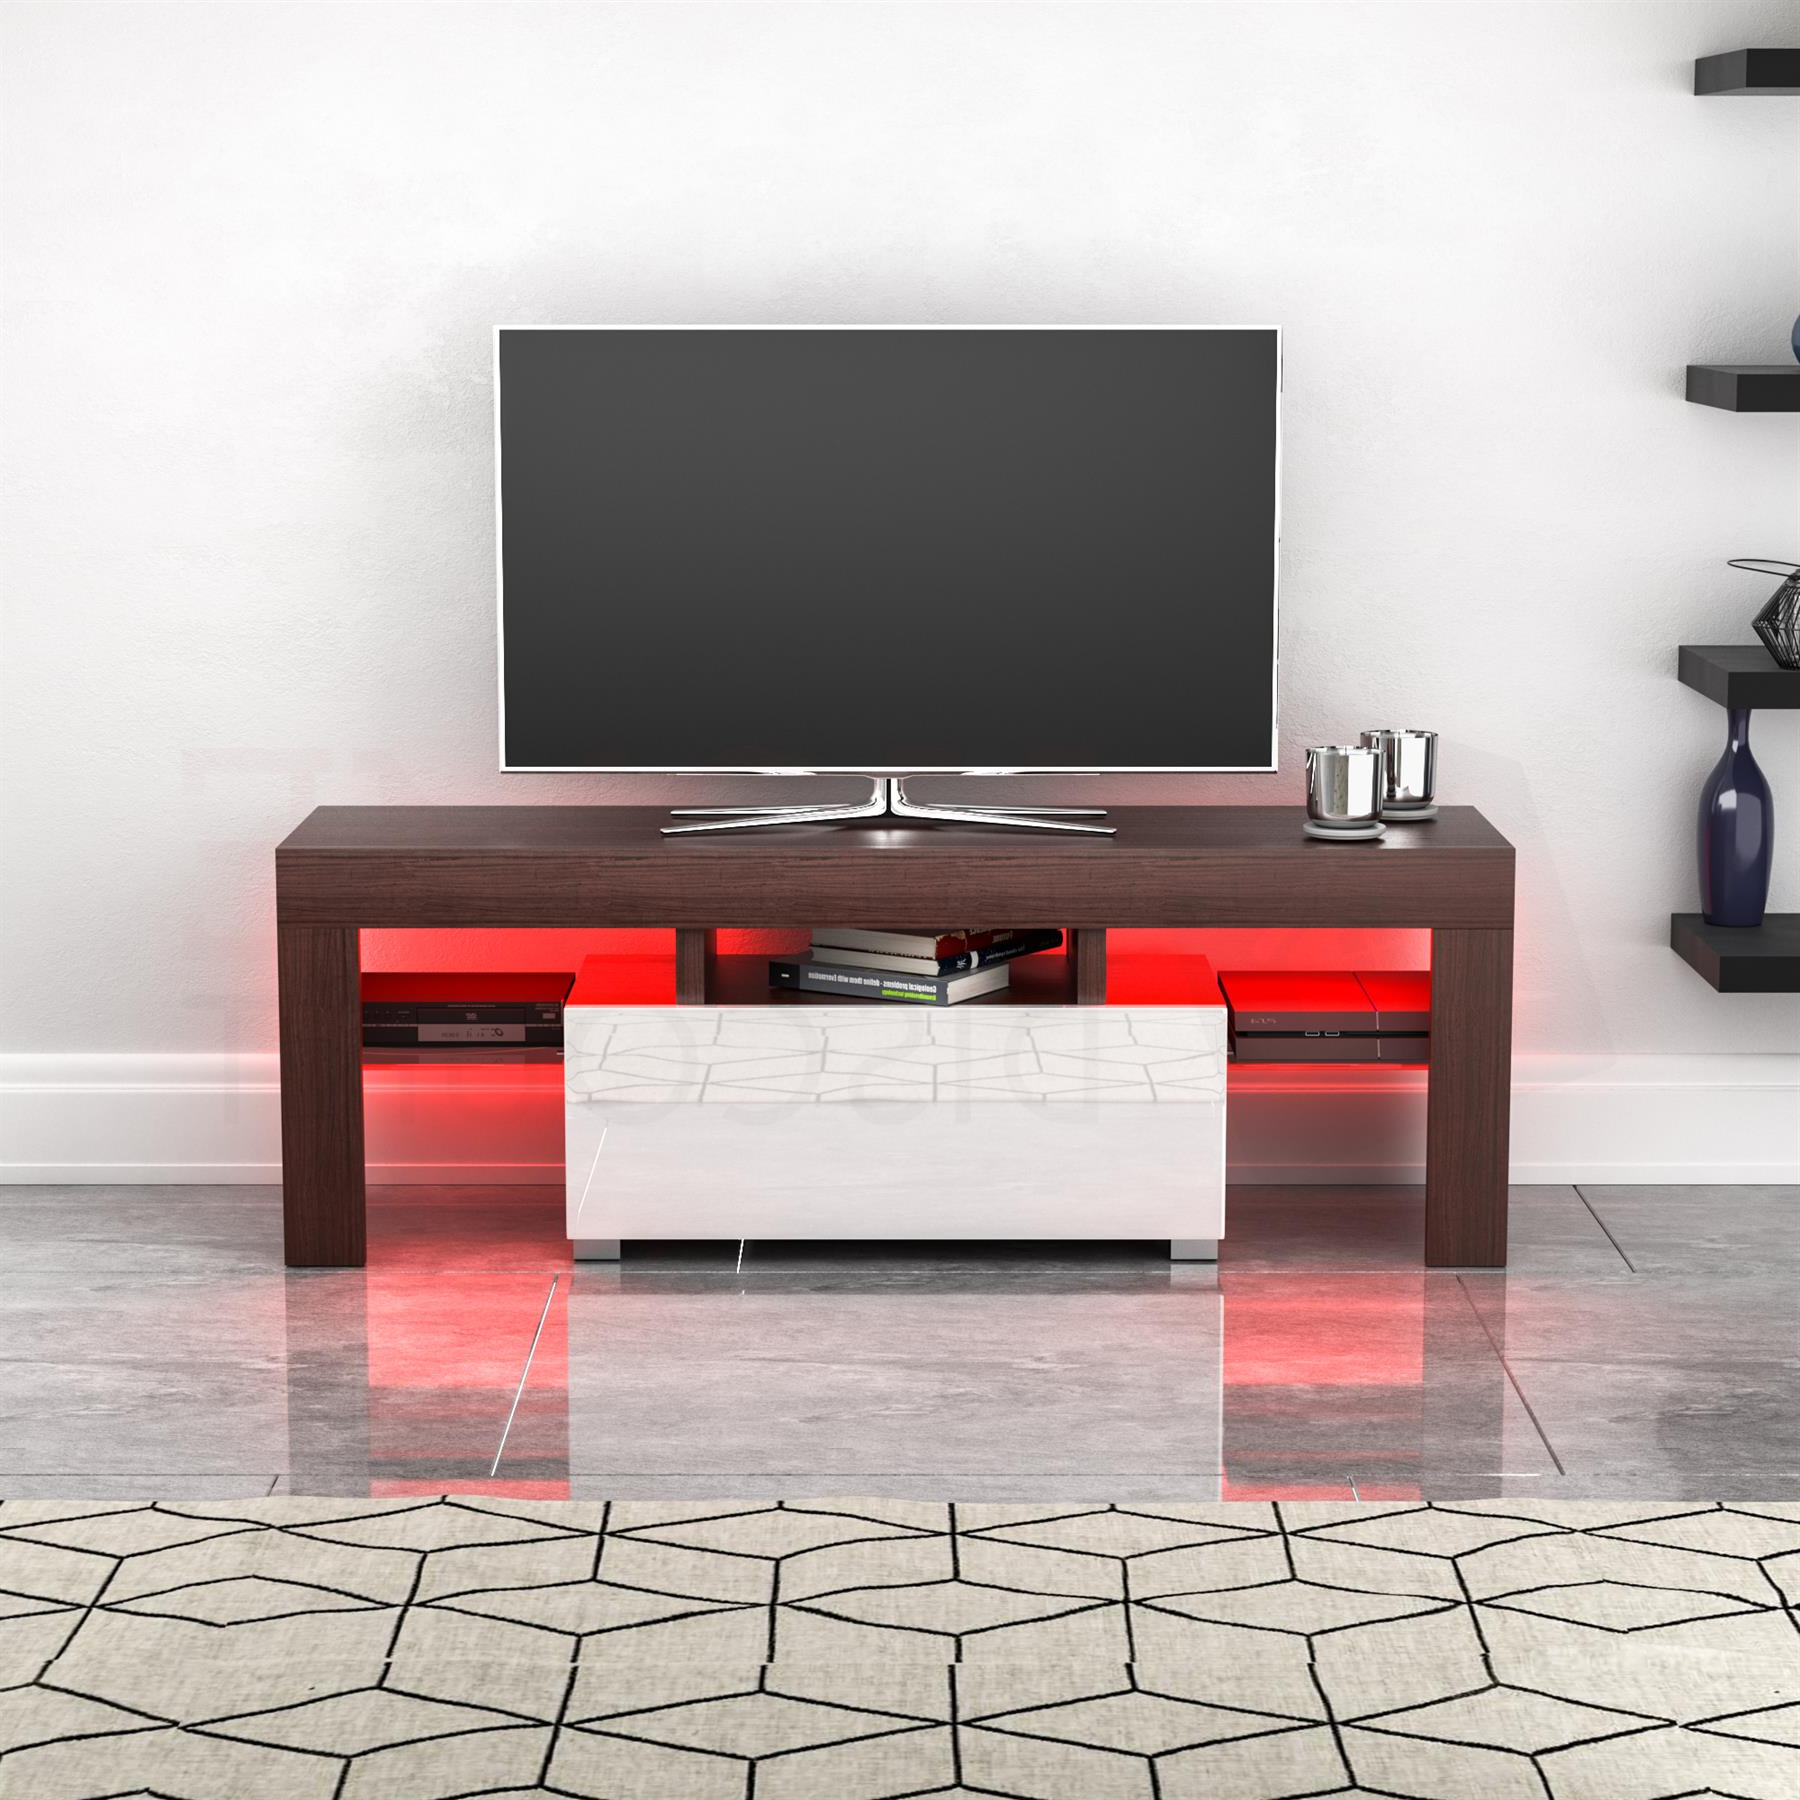 Luna Led Tv Stand Cabinet Unit 1 Drawer Modern Regarding Fashionable Zimtown Modern Tv Stands High Gloss Media Console Cabinet With Led Shelf And Drawers (View 2 of 10)